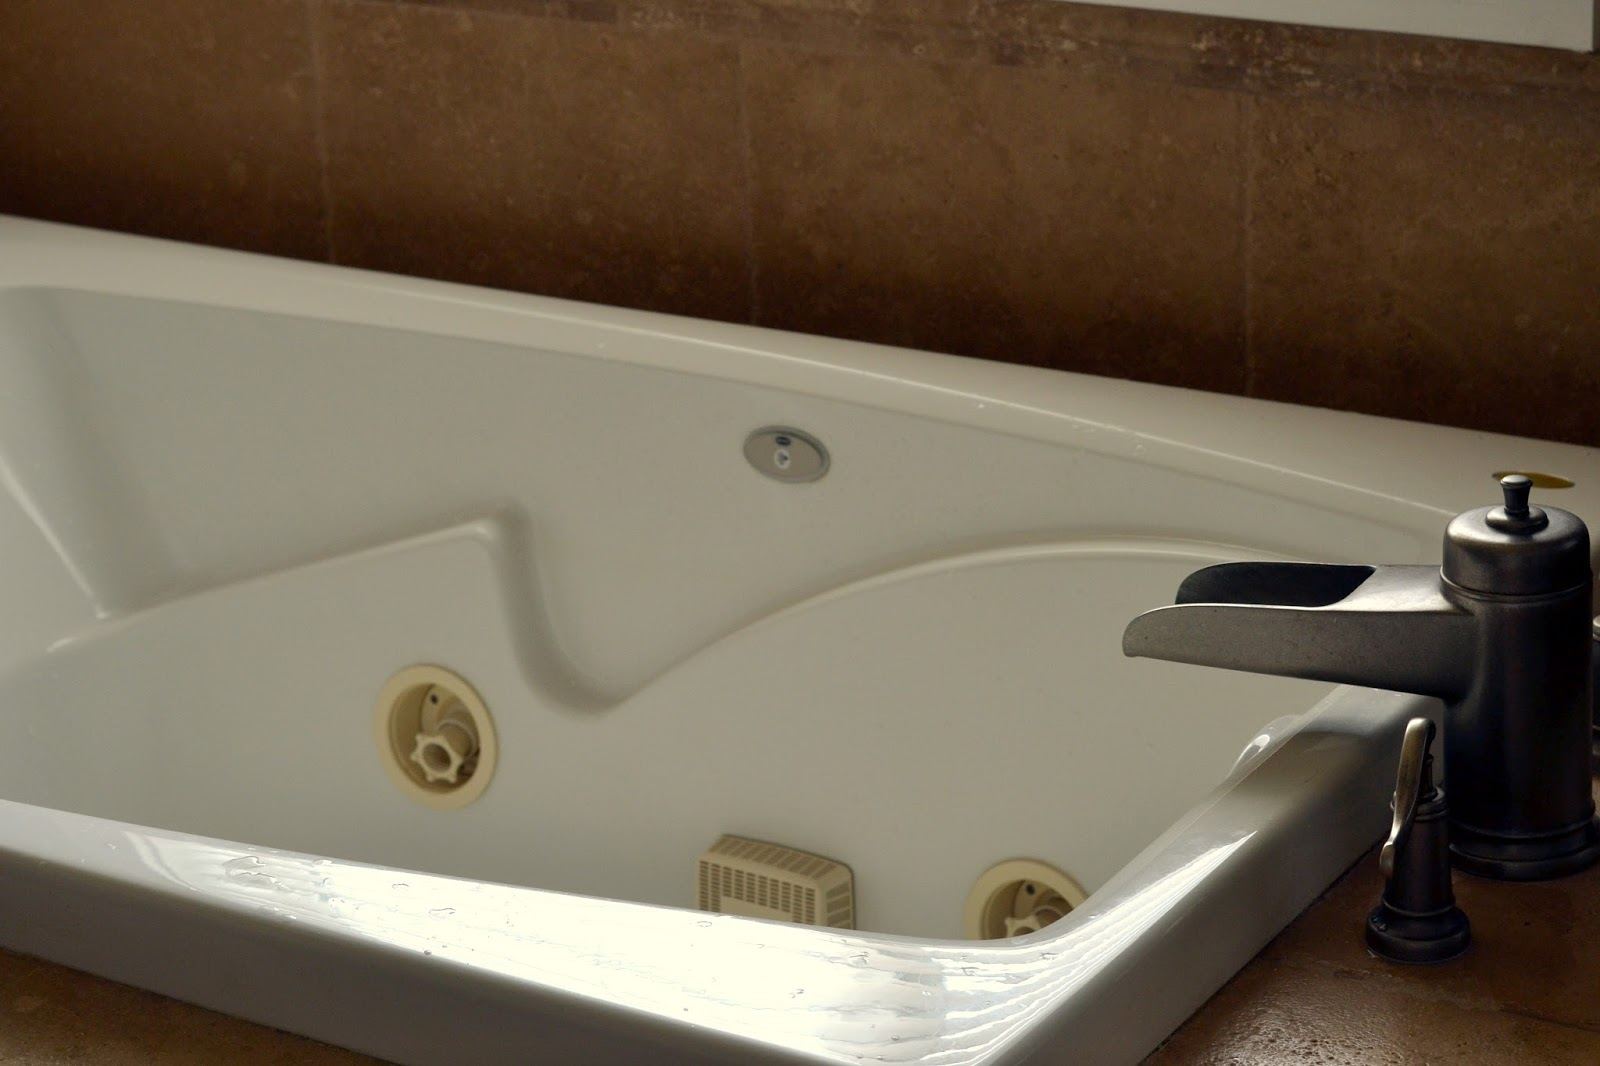 How to Clean Your Jetted Tub - Rachel Teodoro